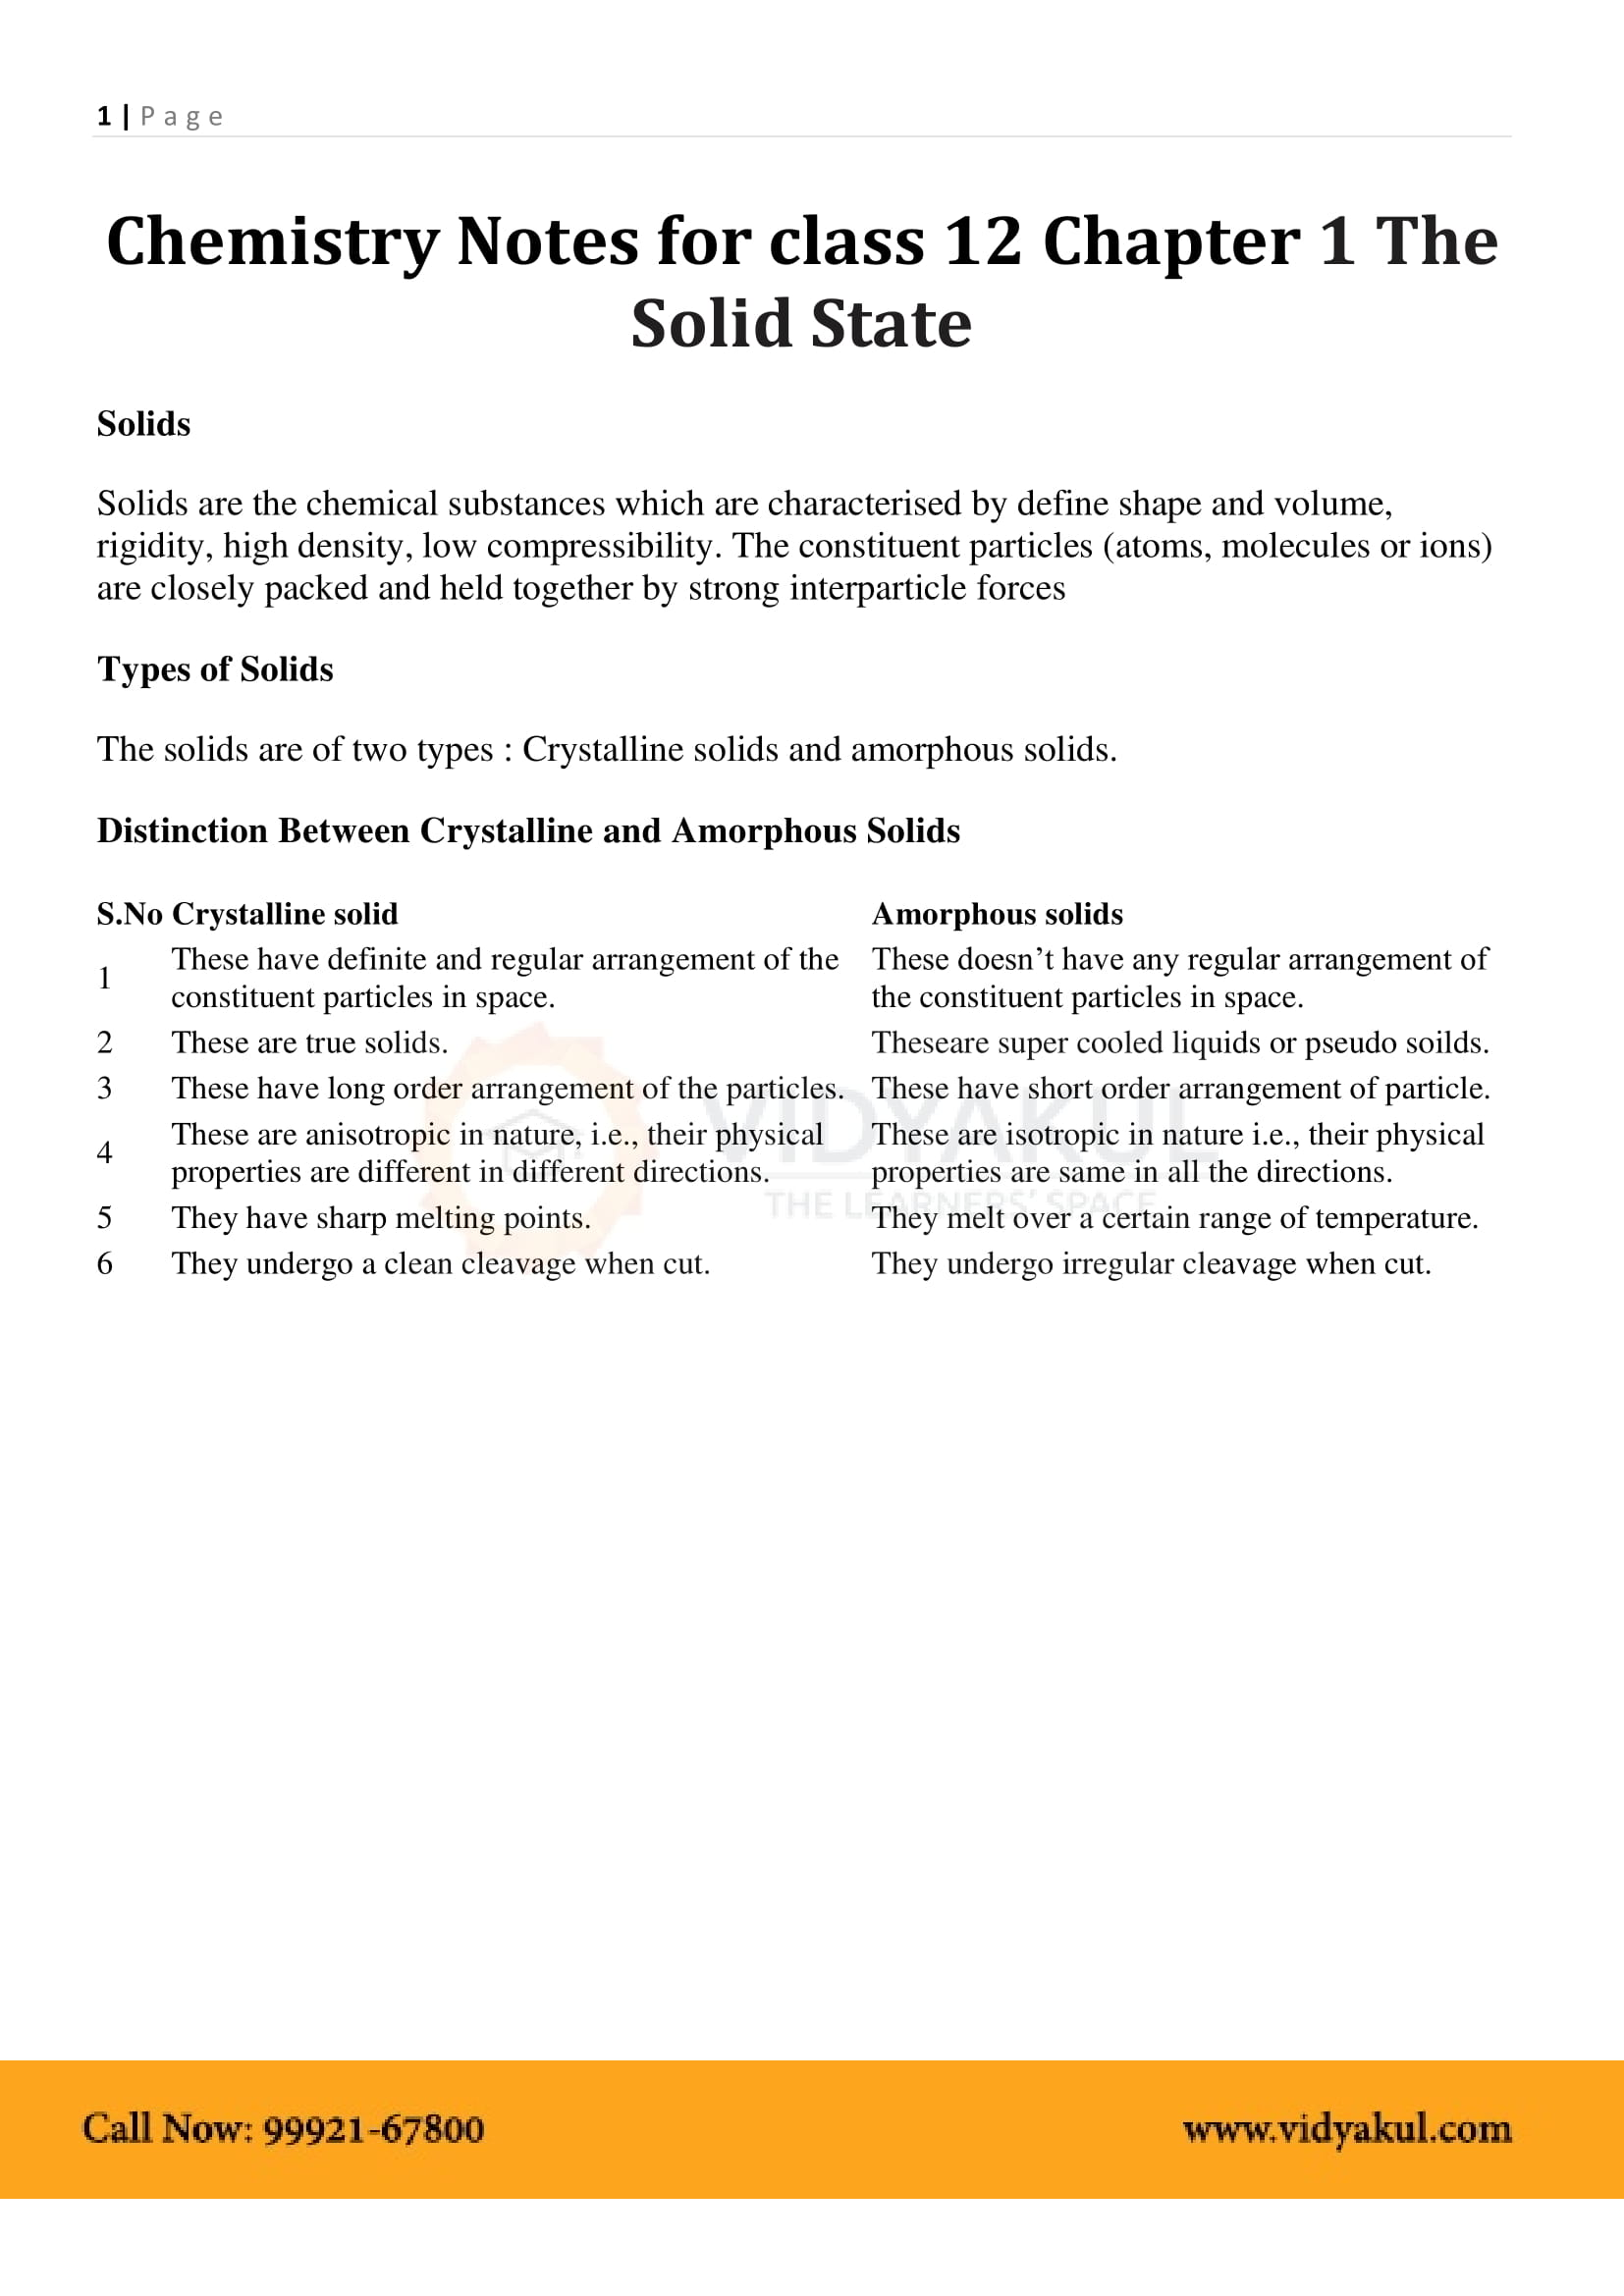 Solid State Class 12 Notes | Vidyakul